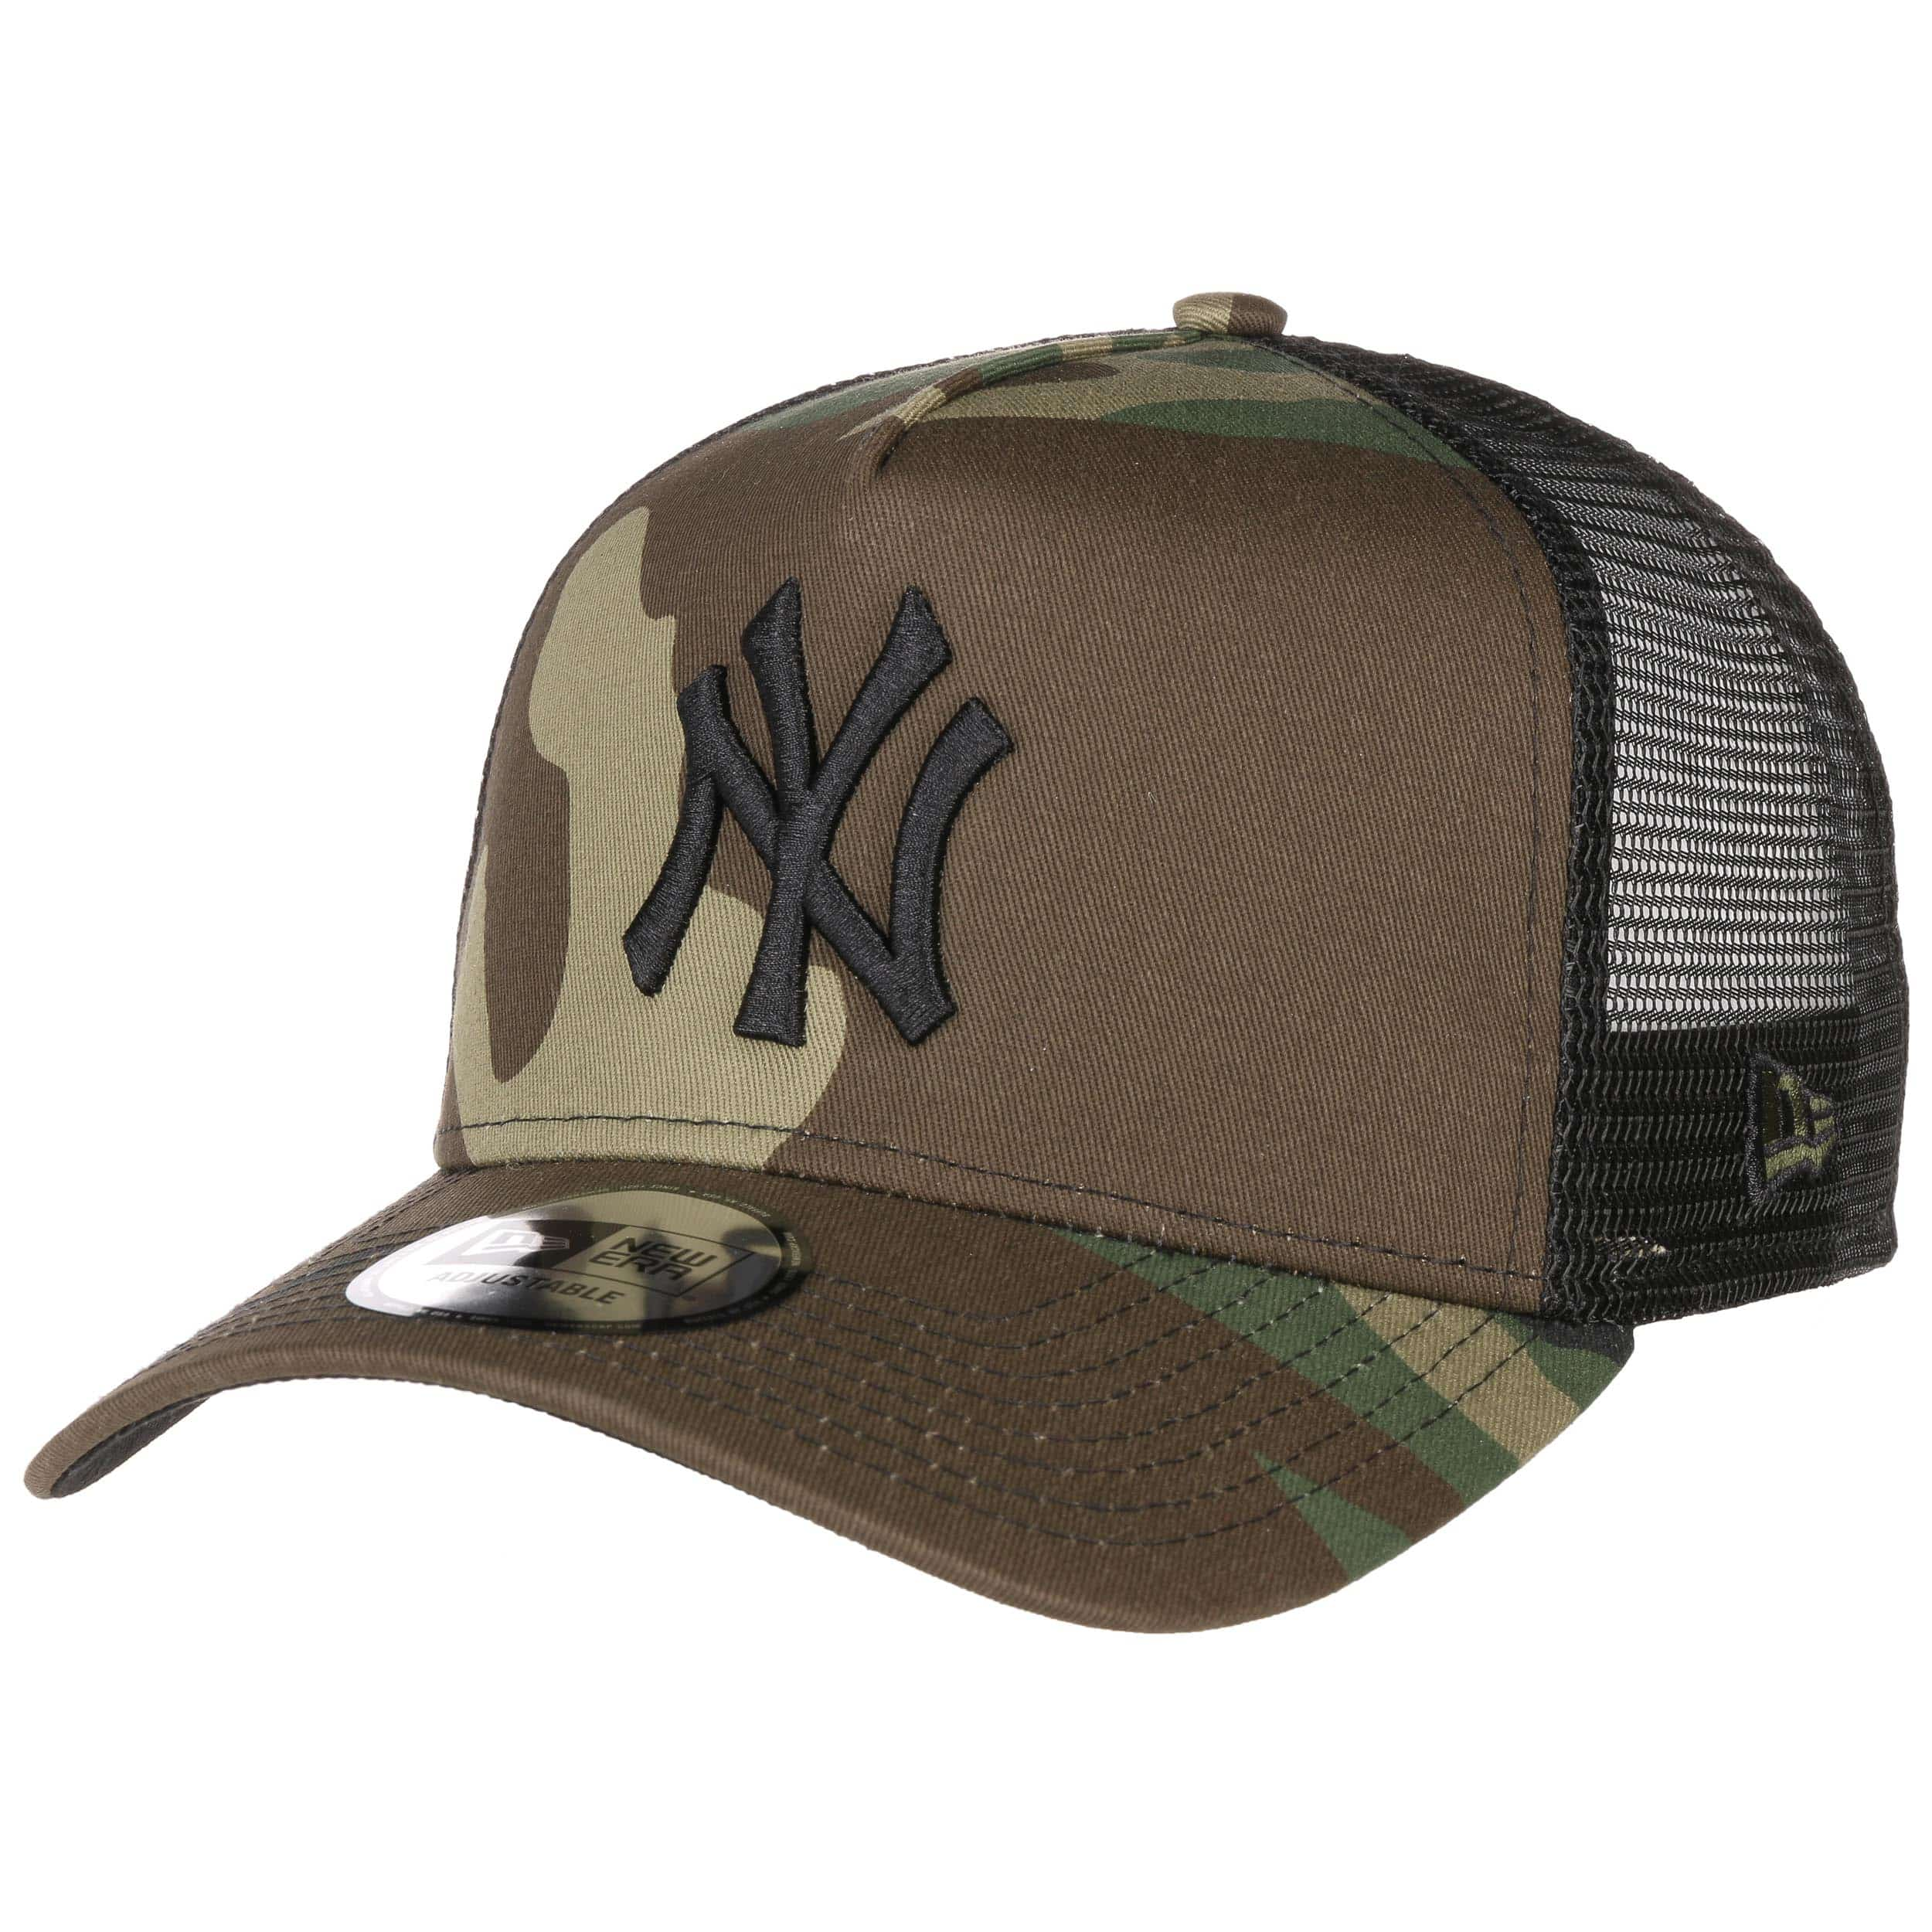 51340f0f73 Clean Camo Yankees Trucker Cap. by New Era